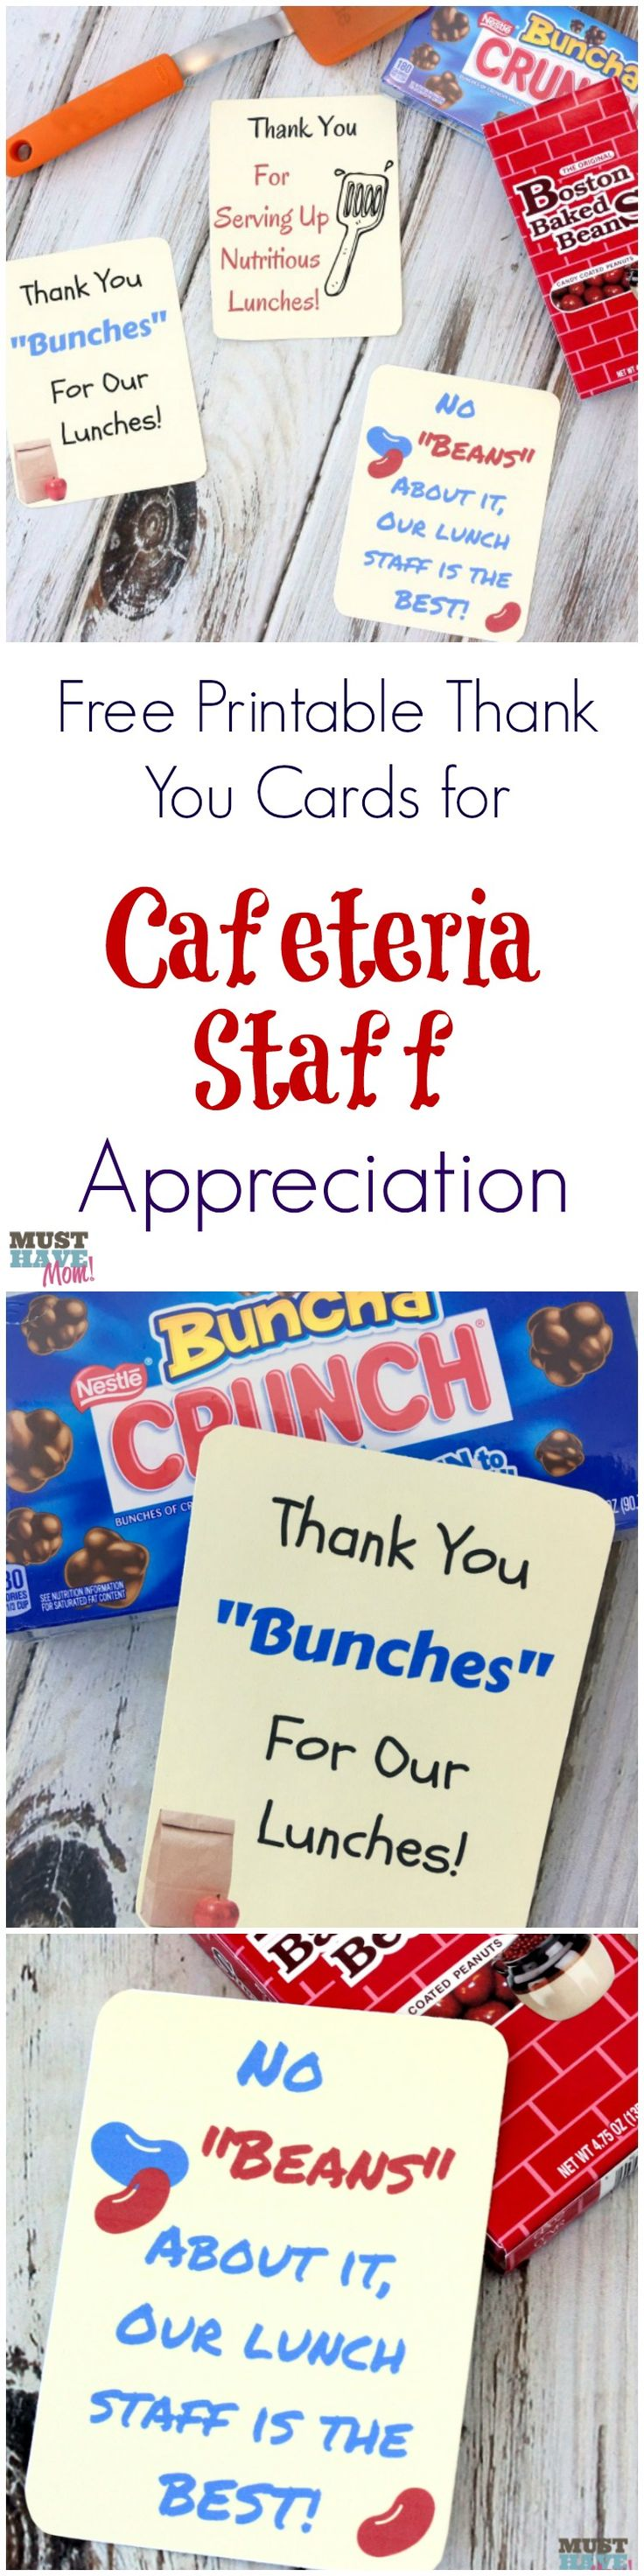 Free School Lunch Hero Day Printable Thank You Cards For Cafeteria Staff